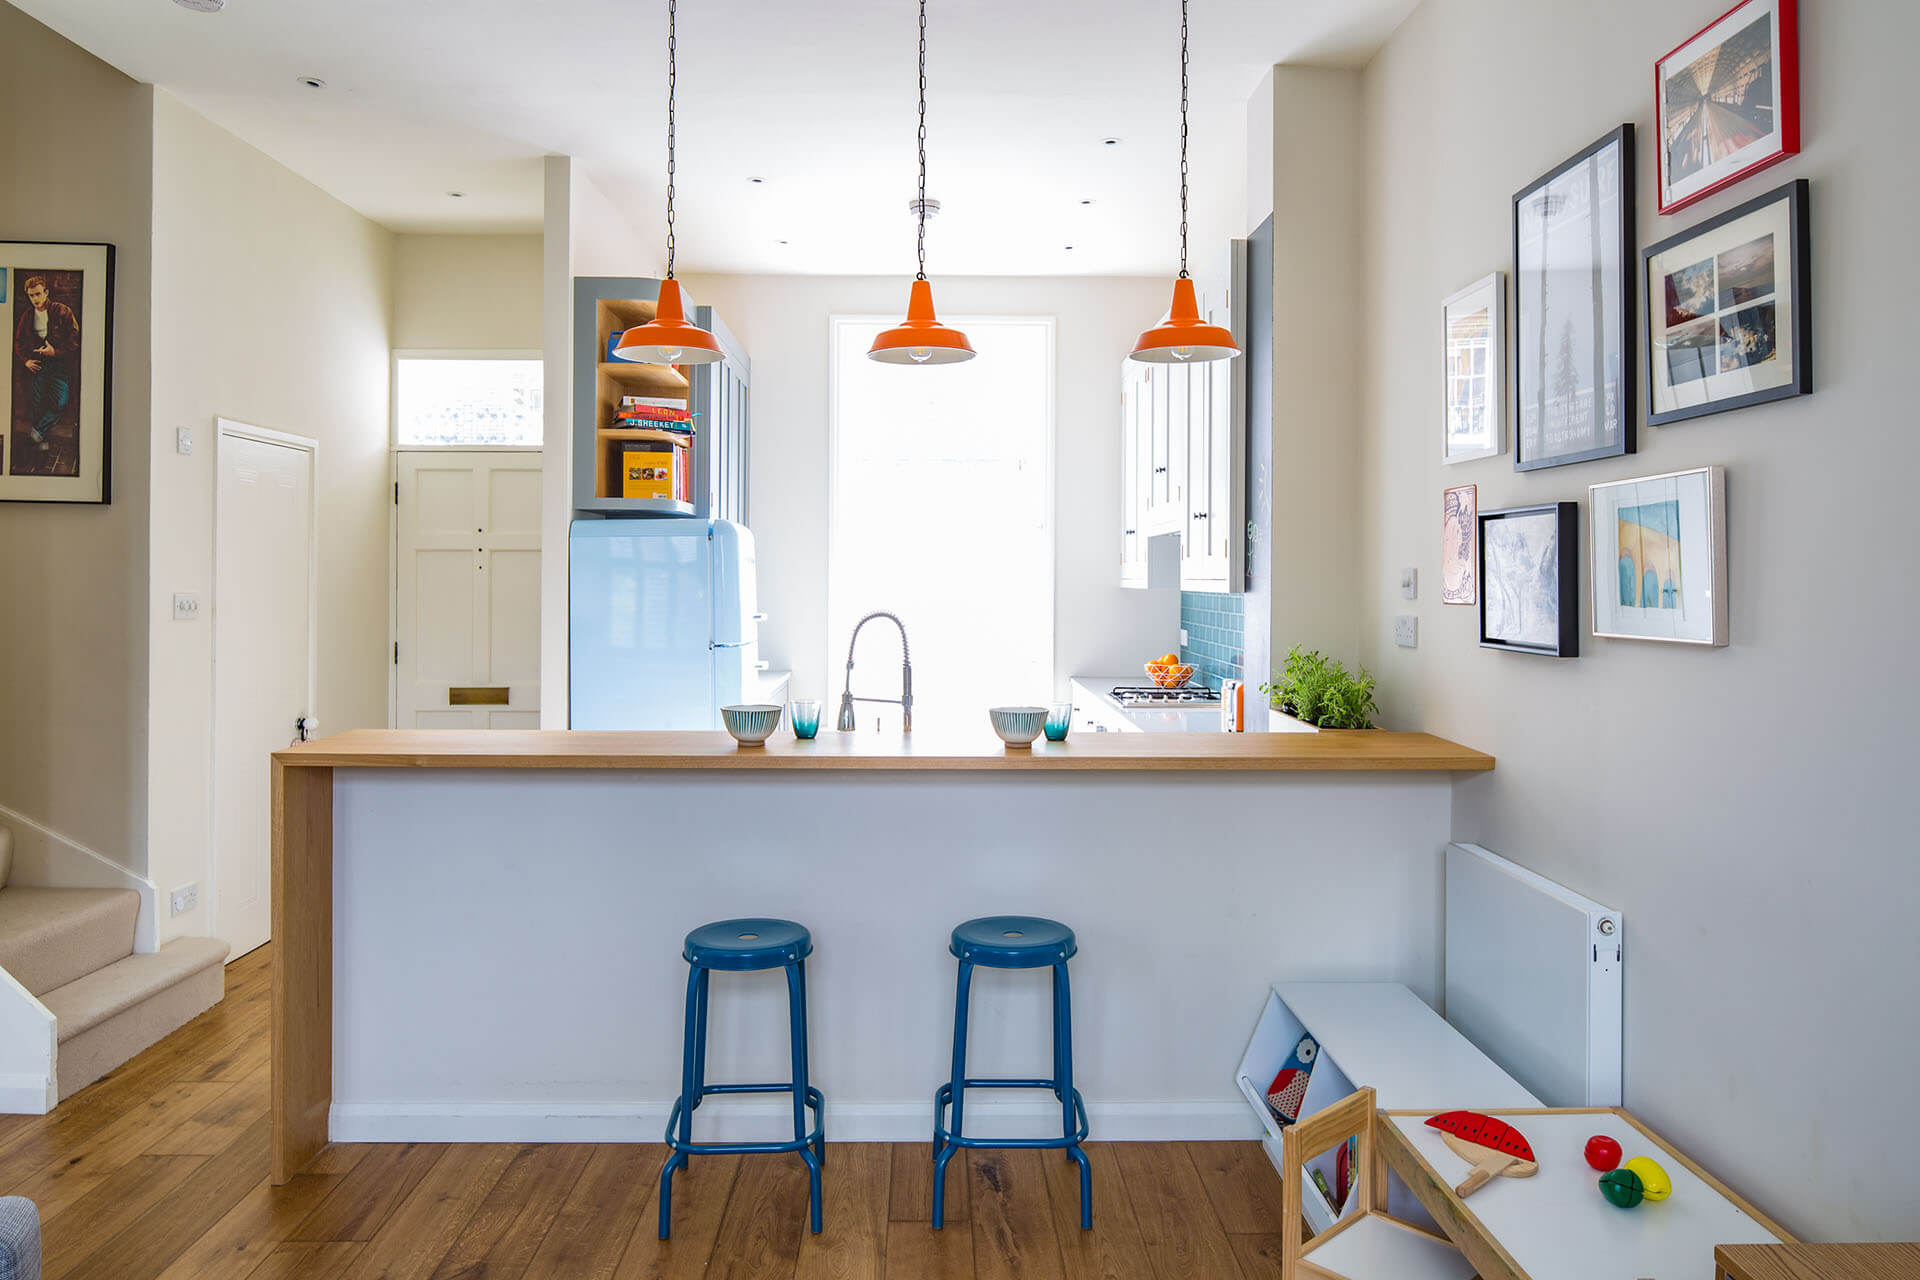 Quirky retro Shaker kitchen breakfast bar seating and Mullan Hex pendant lights